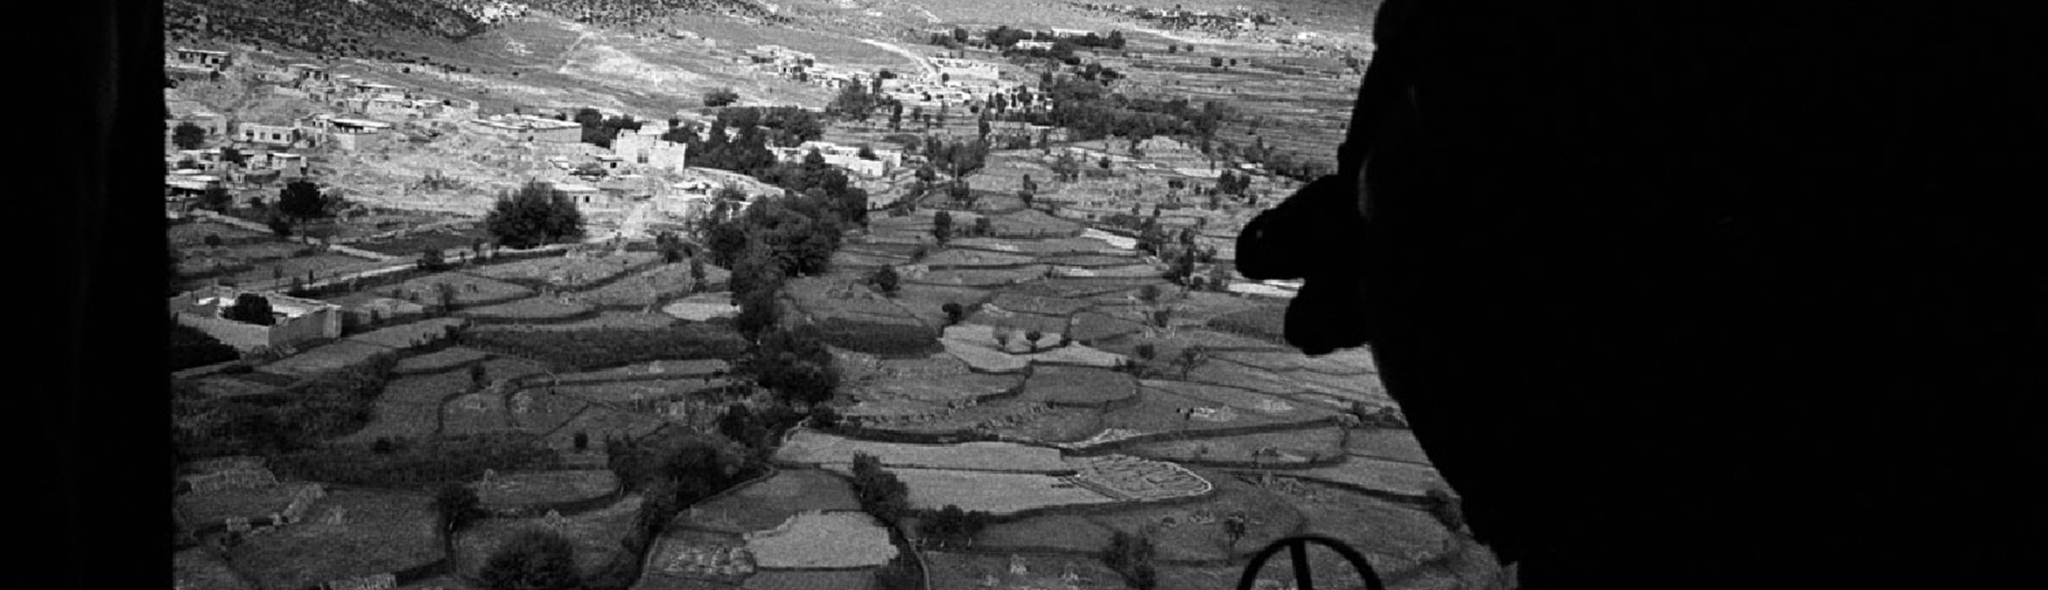 Over Wartime Afghanistan (resized)BANNER